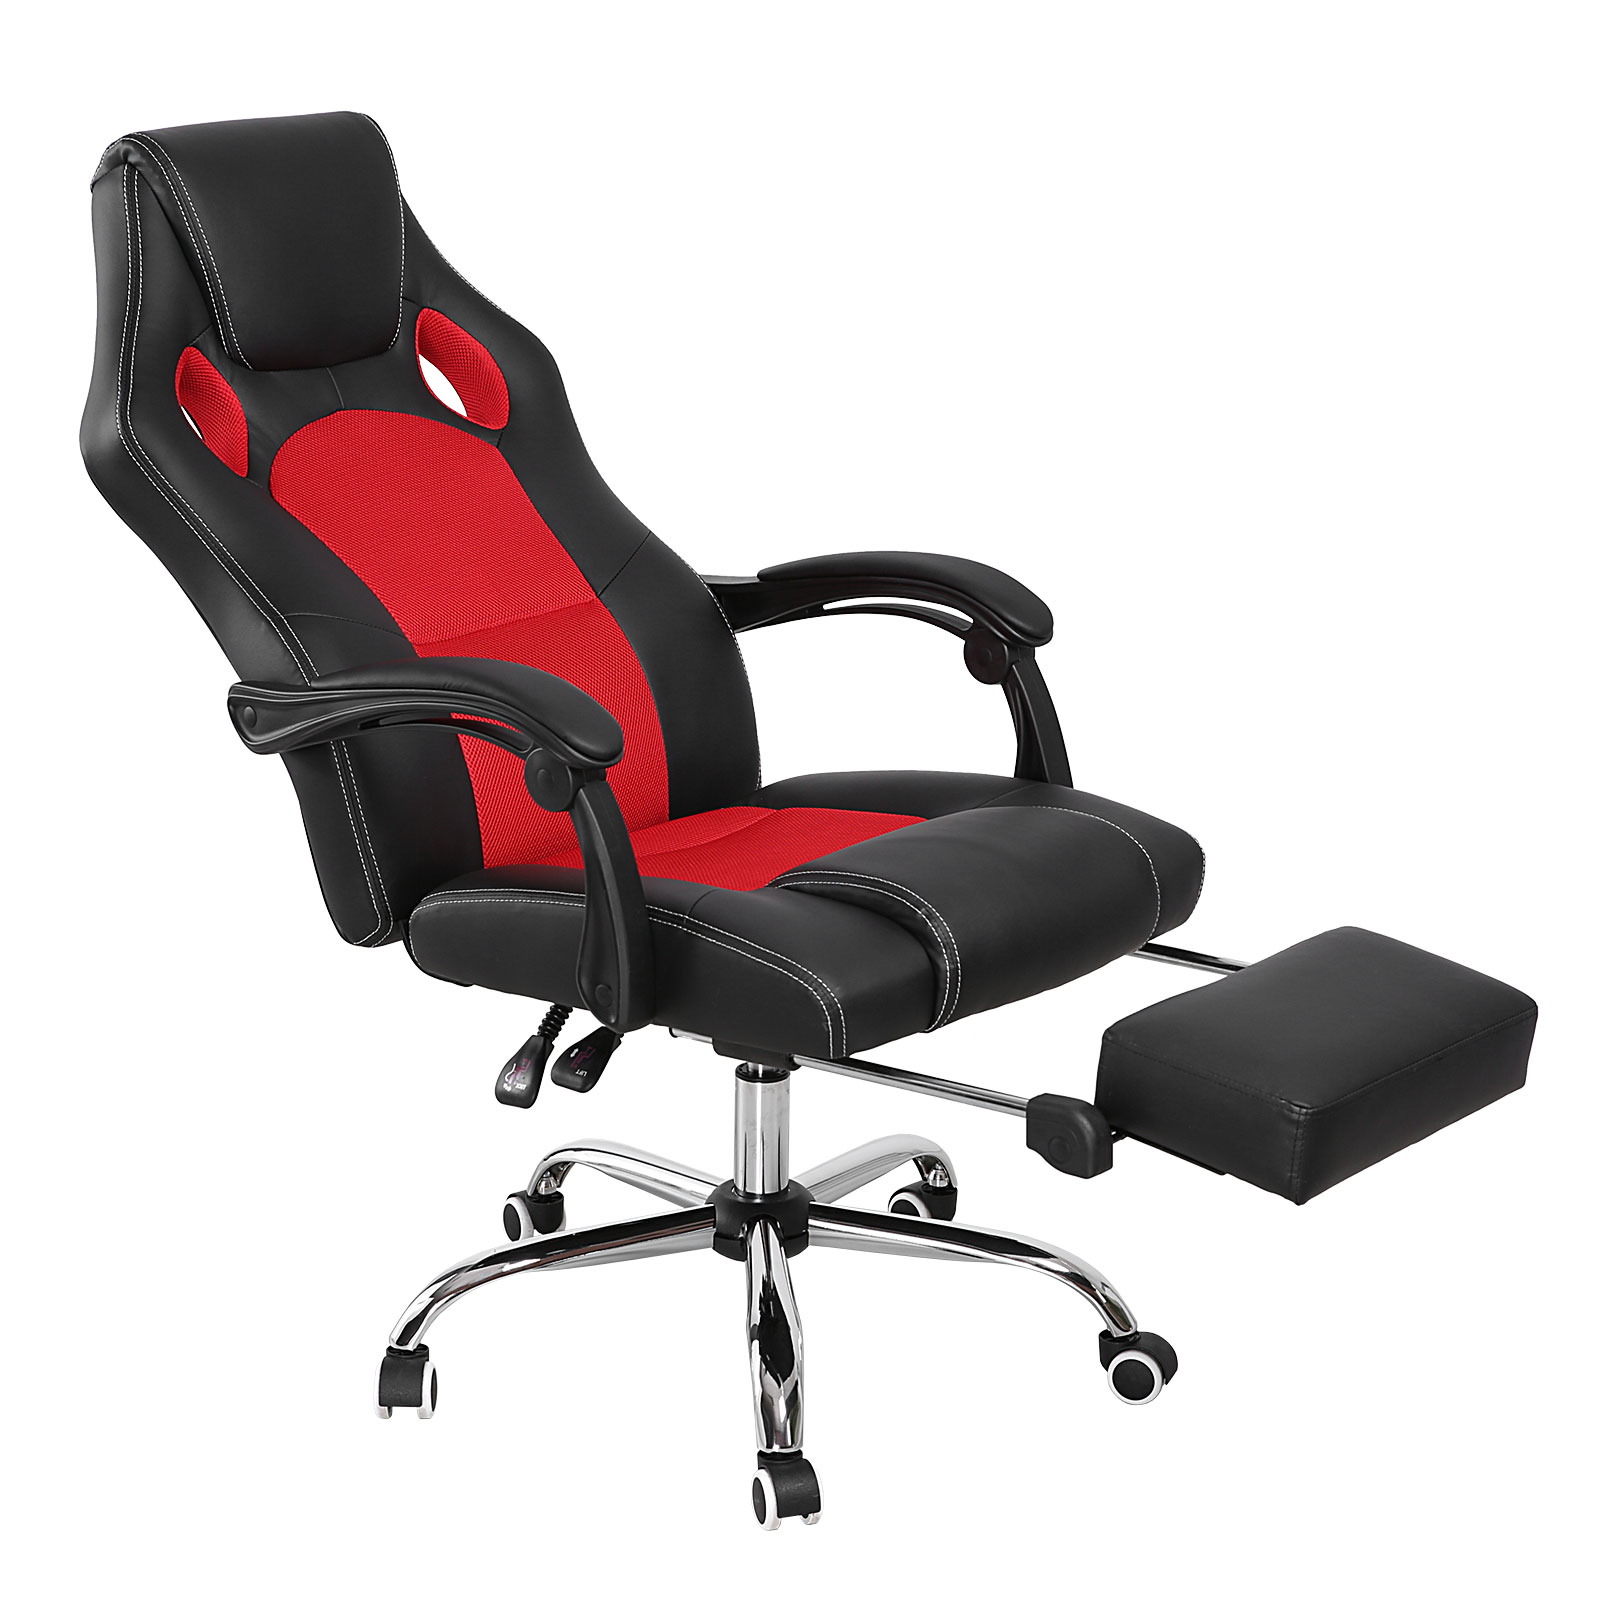 reclining gaming chair bed racing office high back car style executive